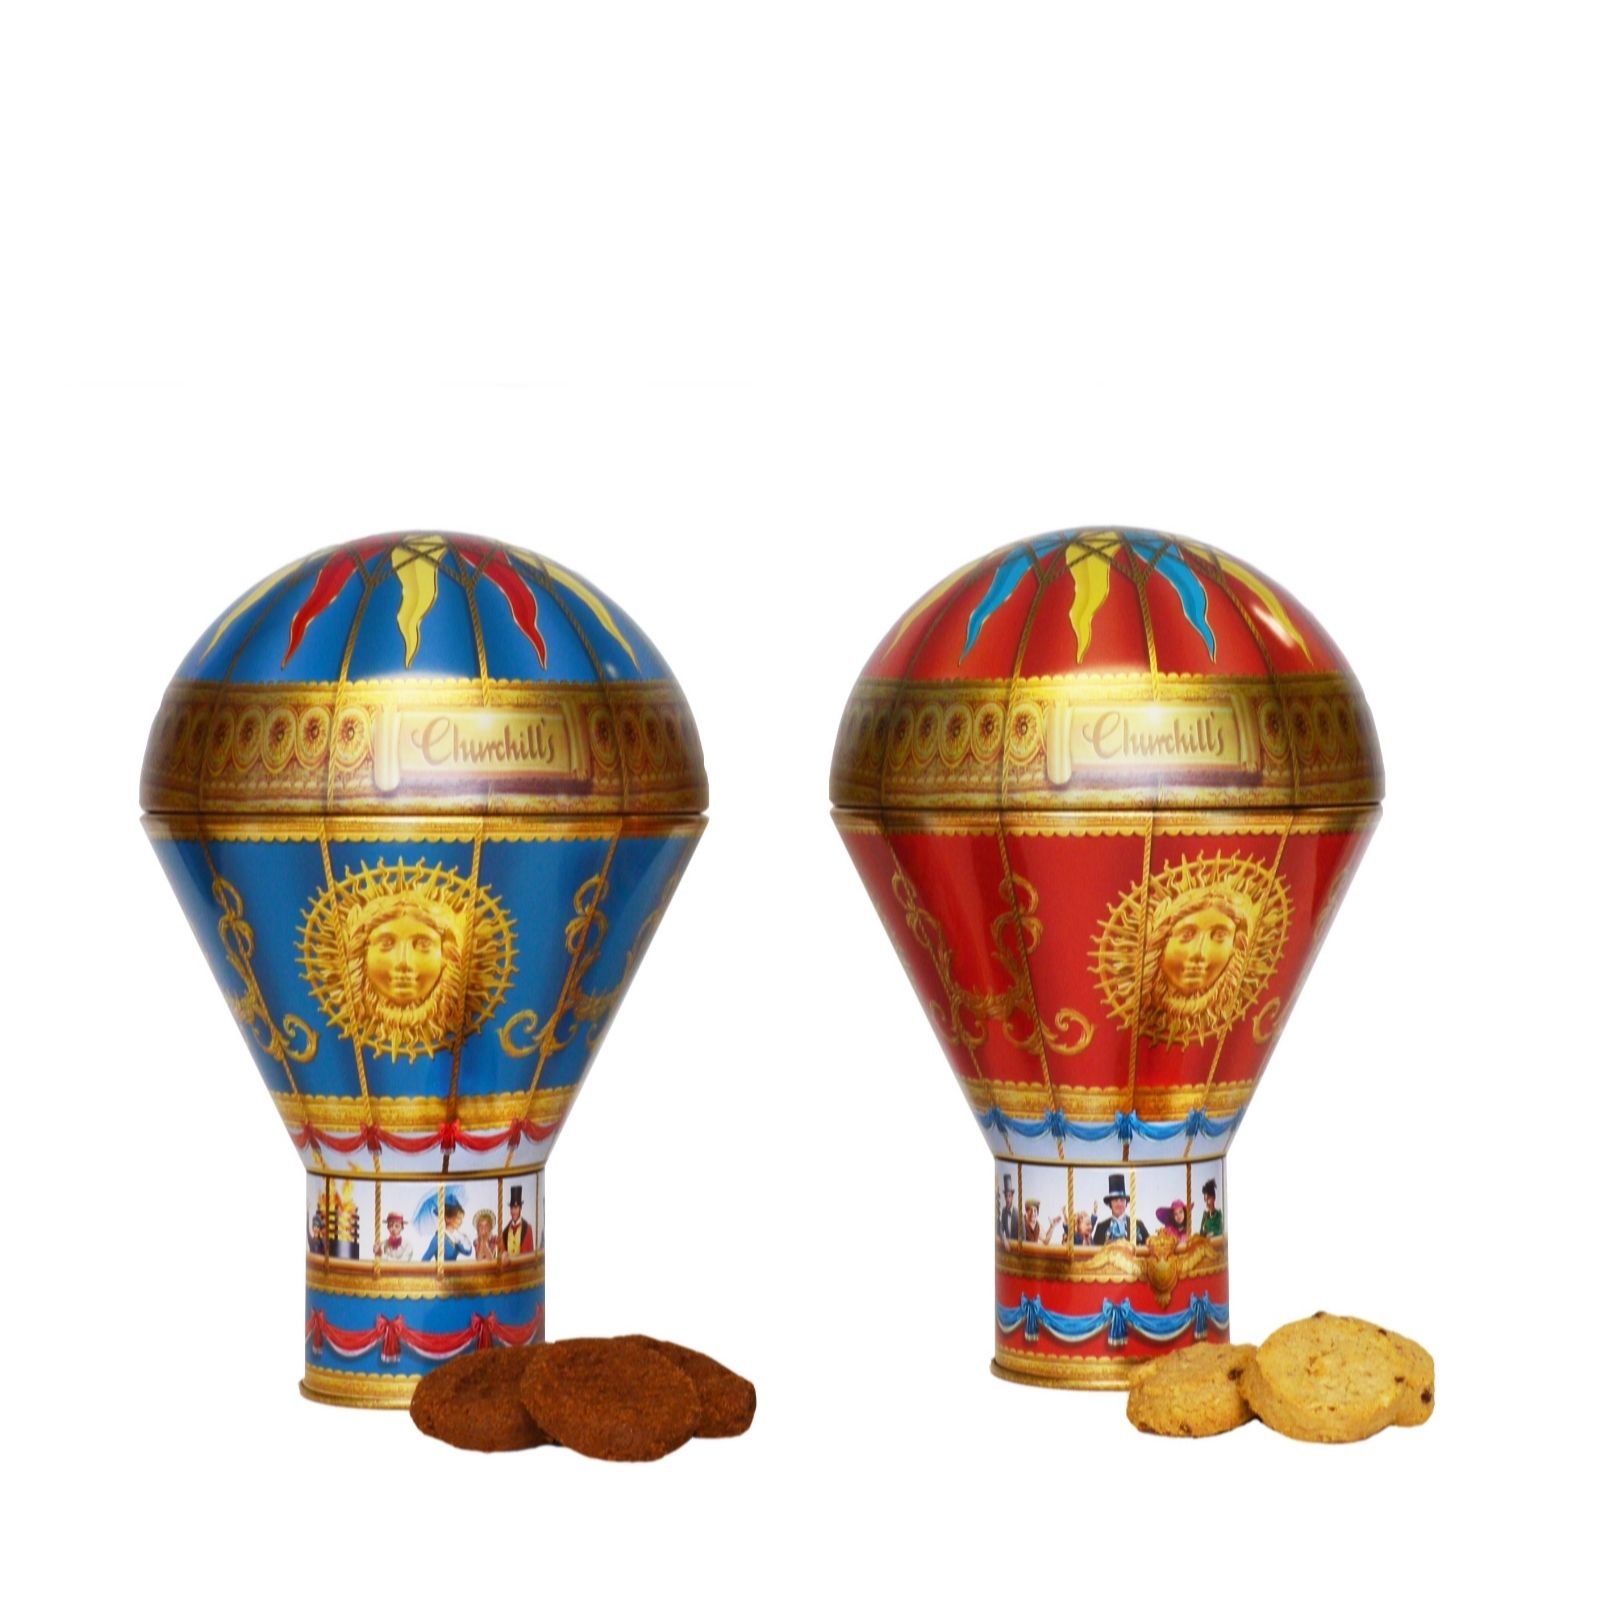 Churchills Confectionery Set Of 2 Hot Air Balloon Tins With Biscuits QVC UK